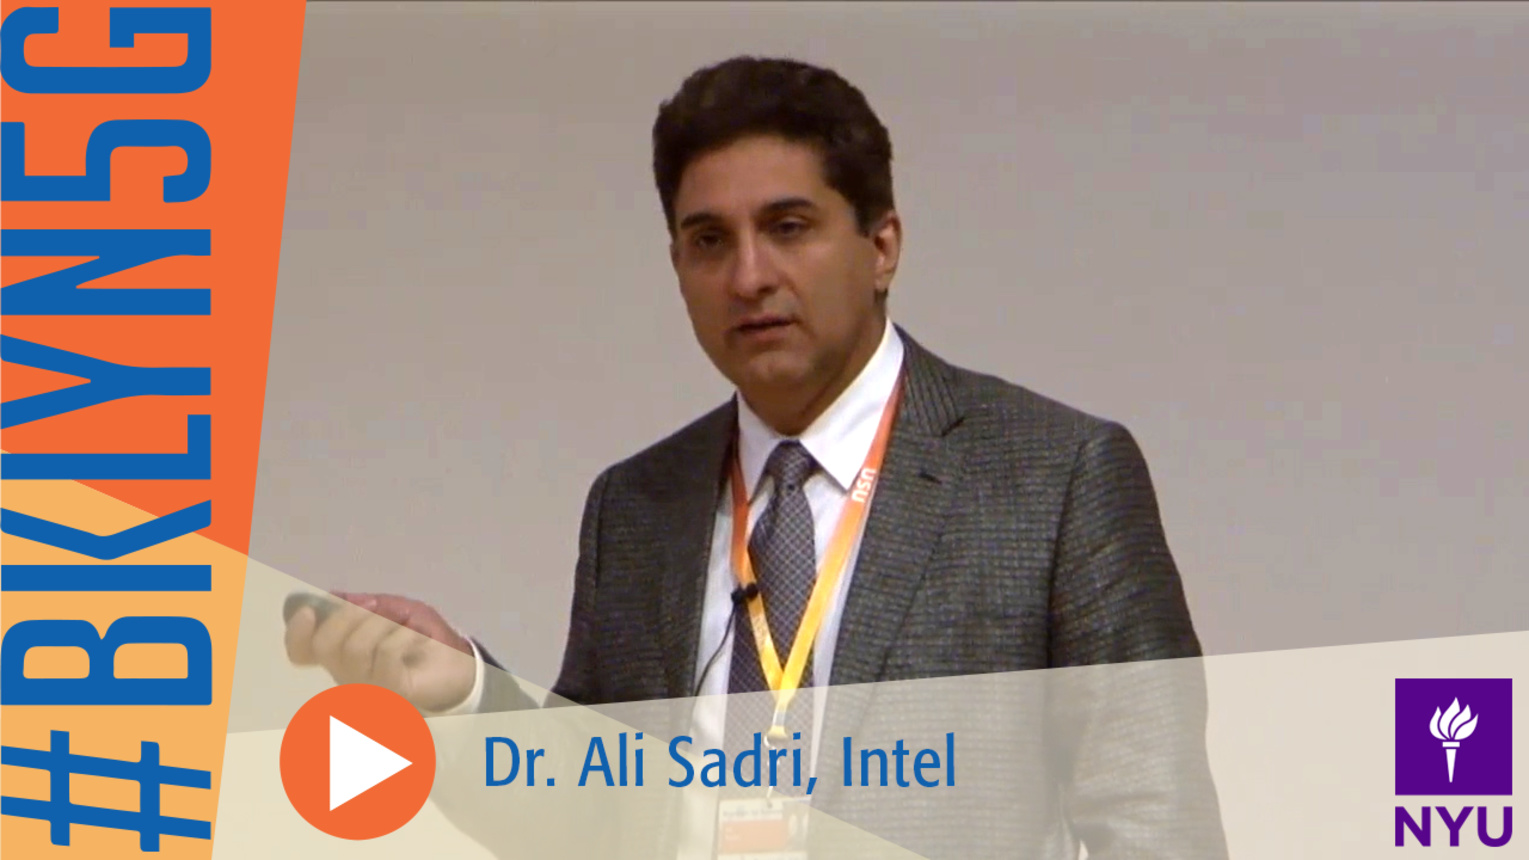 Brooklyn 5G Summit 2014: Dr. Ali Sadri on the Evolution of the mmWave Technologies